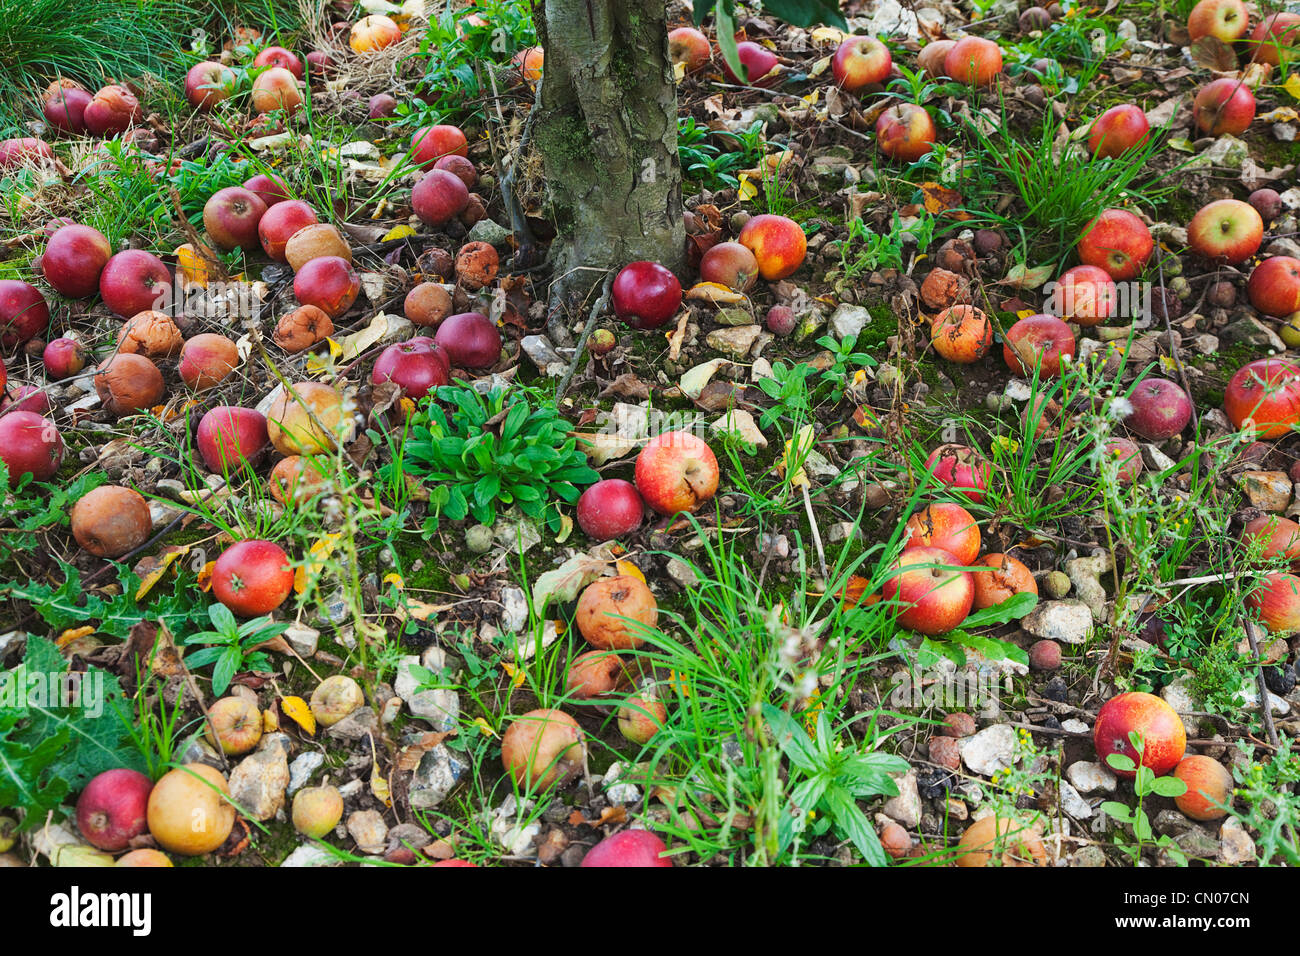 Fruit Apple Katy Apples Rotting On The Ground Having Fallen From Tree In Grange Farms Orchard